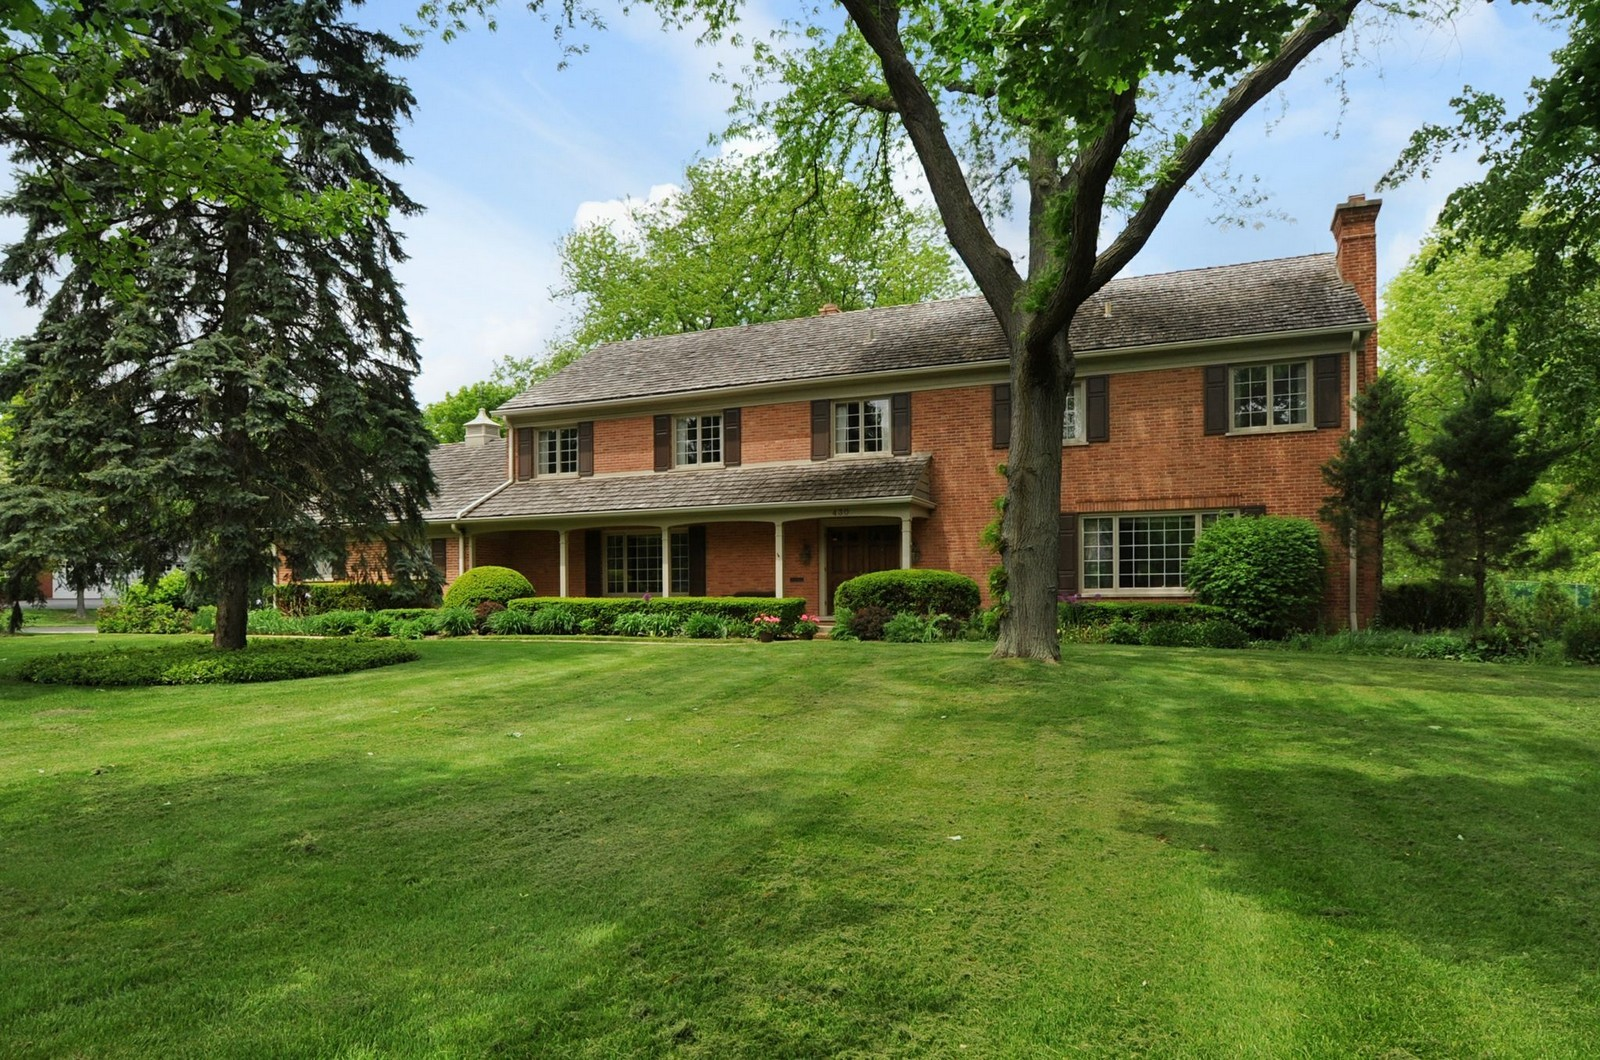 Real Estate Photography - 430 Pebblebrook, Northfield, IL, 60093 - Location 3